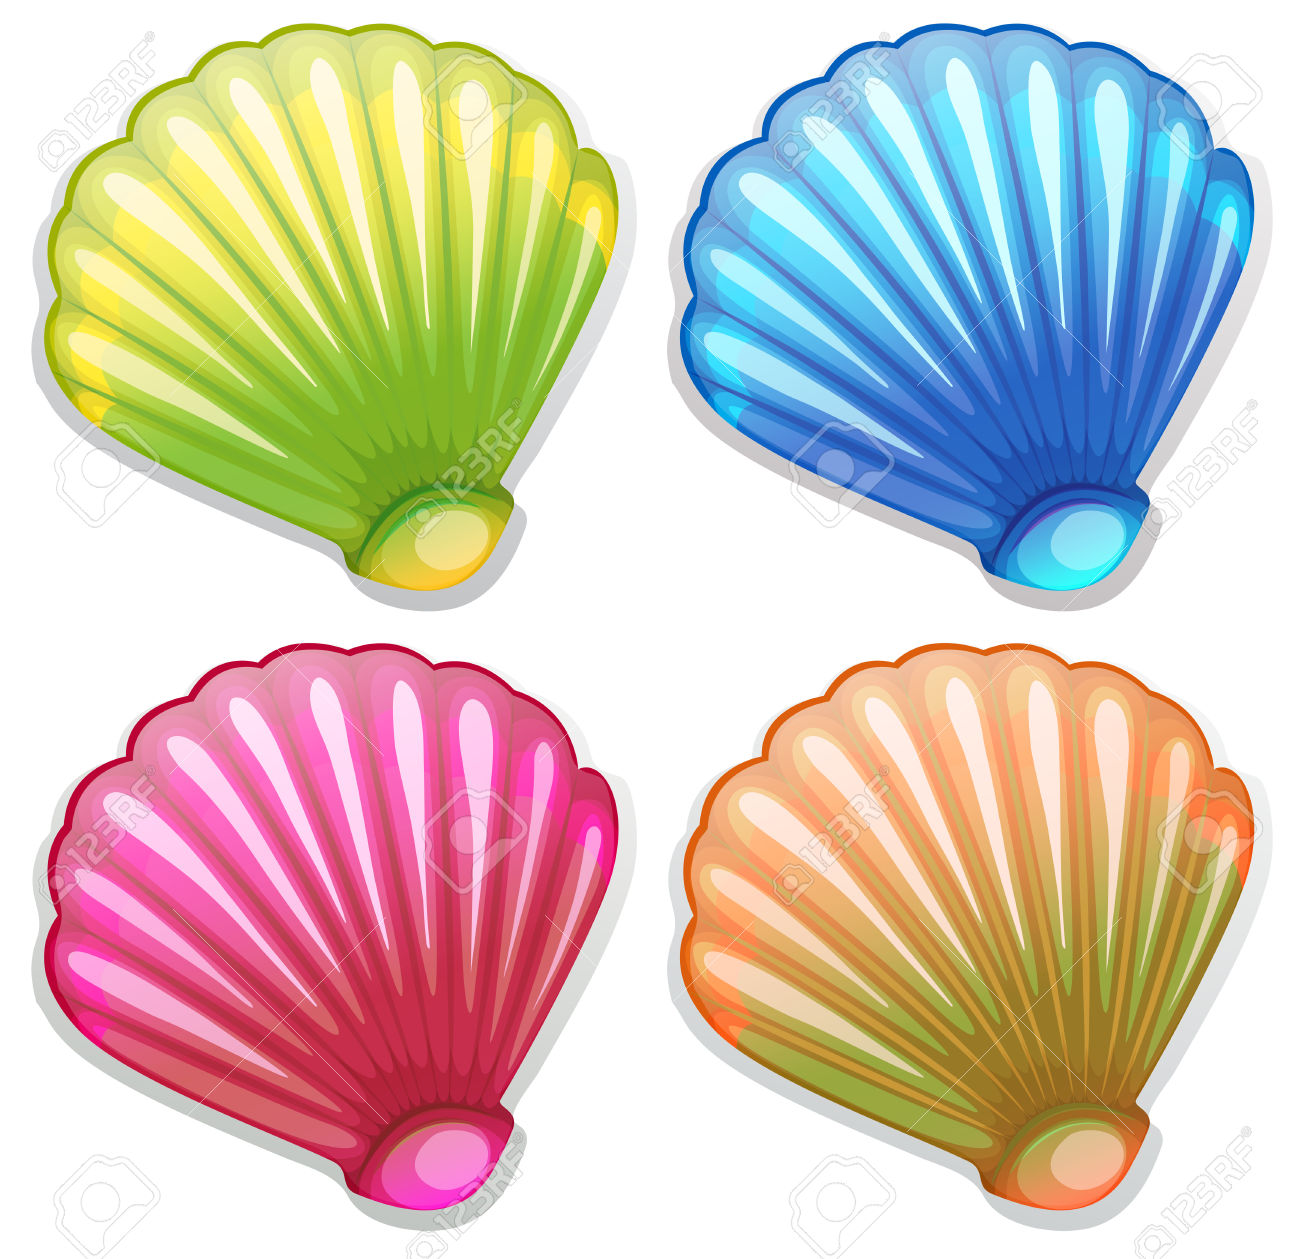 pink-seashell-clipart